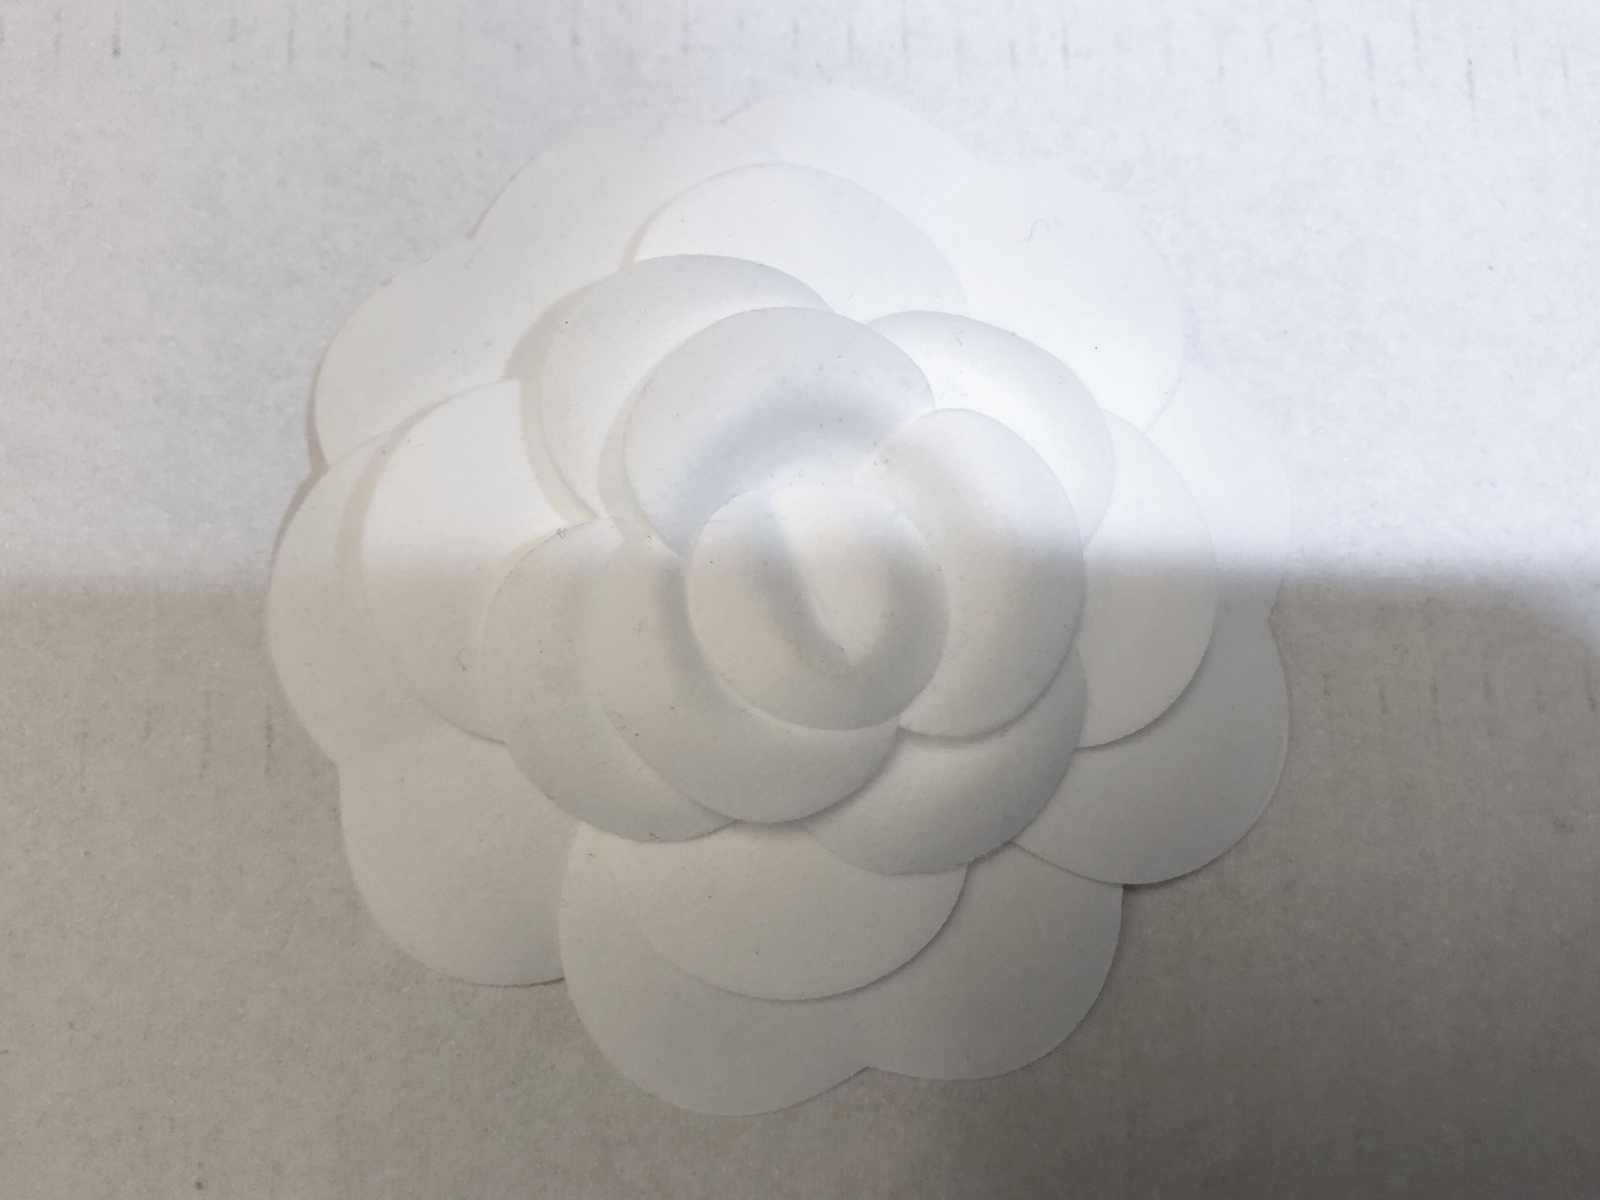 100% AUTHENTIC BRAND NEW CHANEL 2018/2019 White Camellia Flower Box Of 20